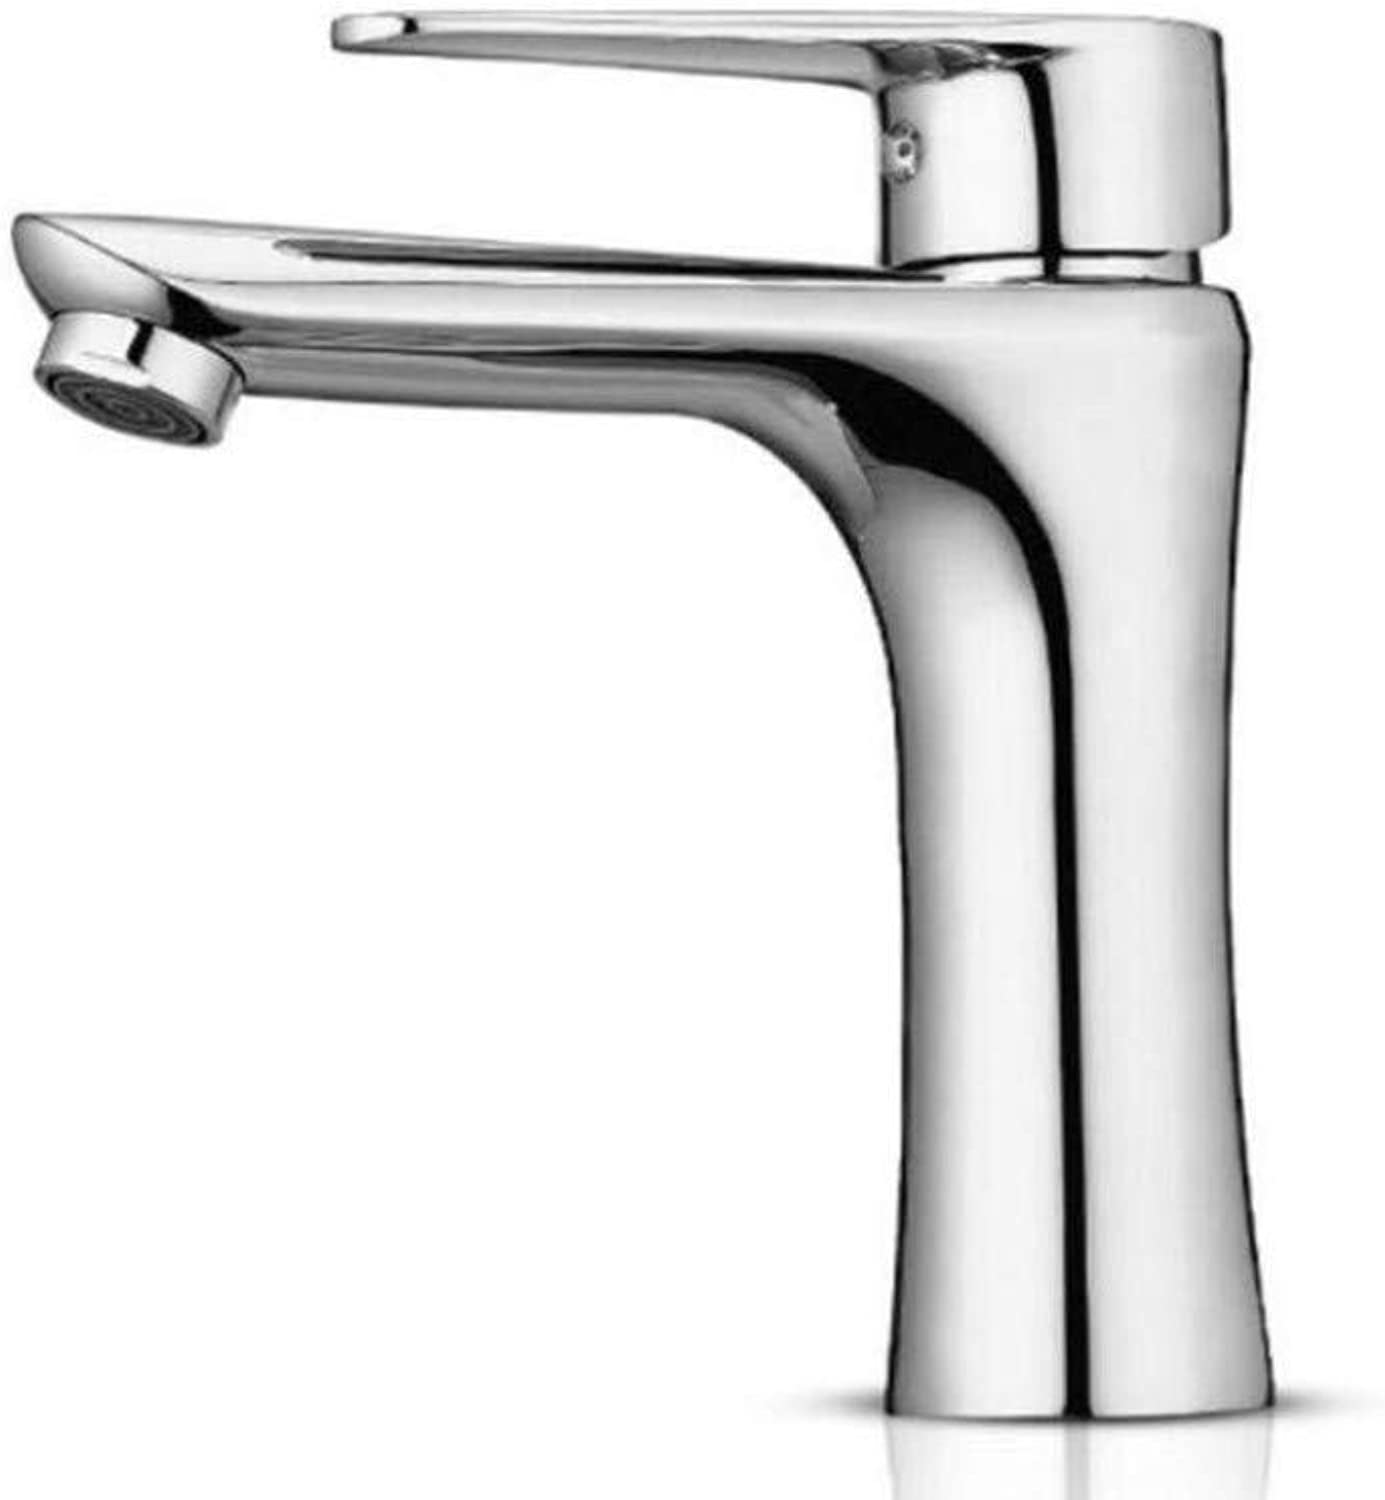 Taps Kitchen Sinktaps Mixer Swivel Faucet Sink 304 Stainless Steel Faucet Cold and Hot